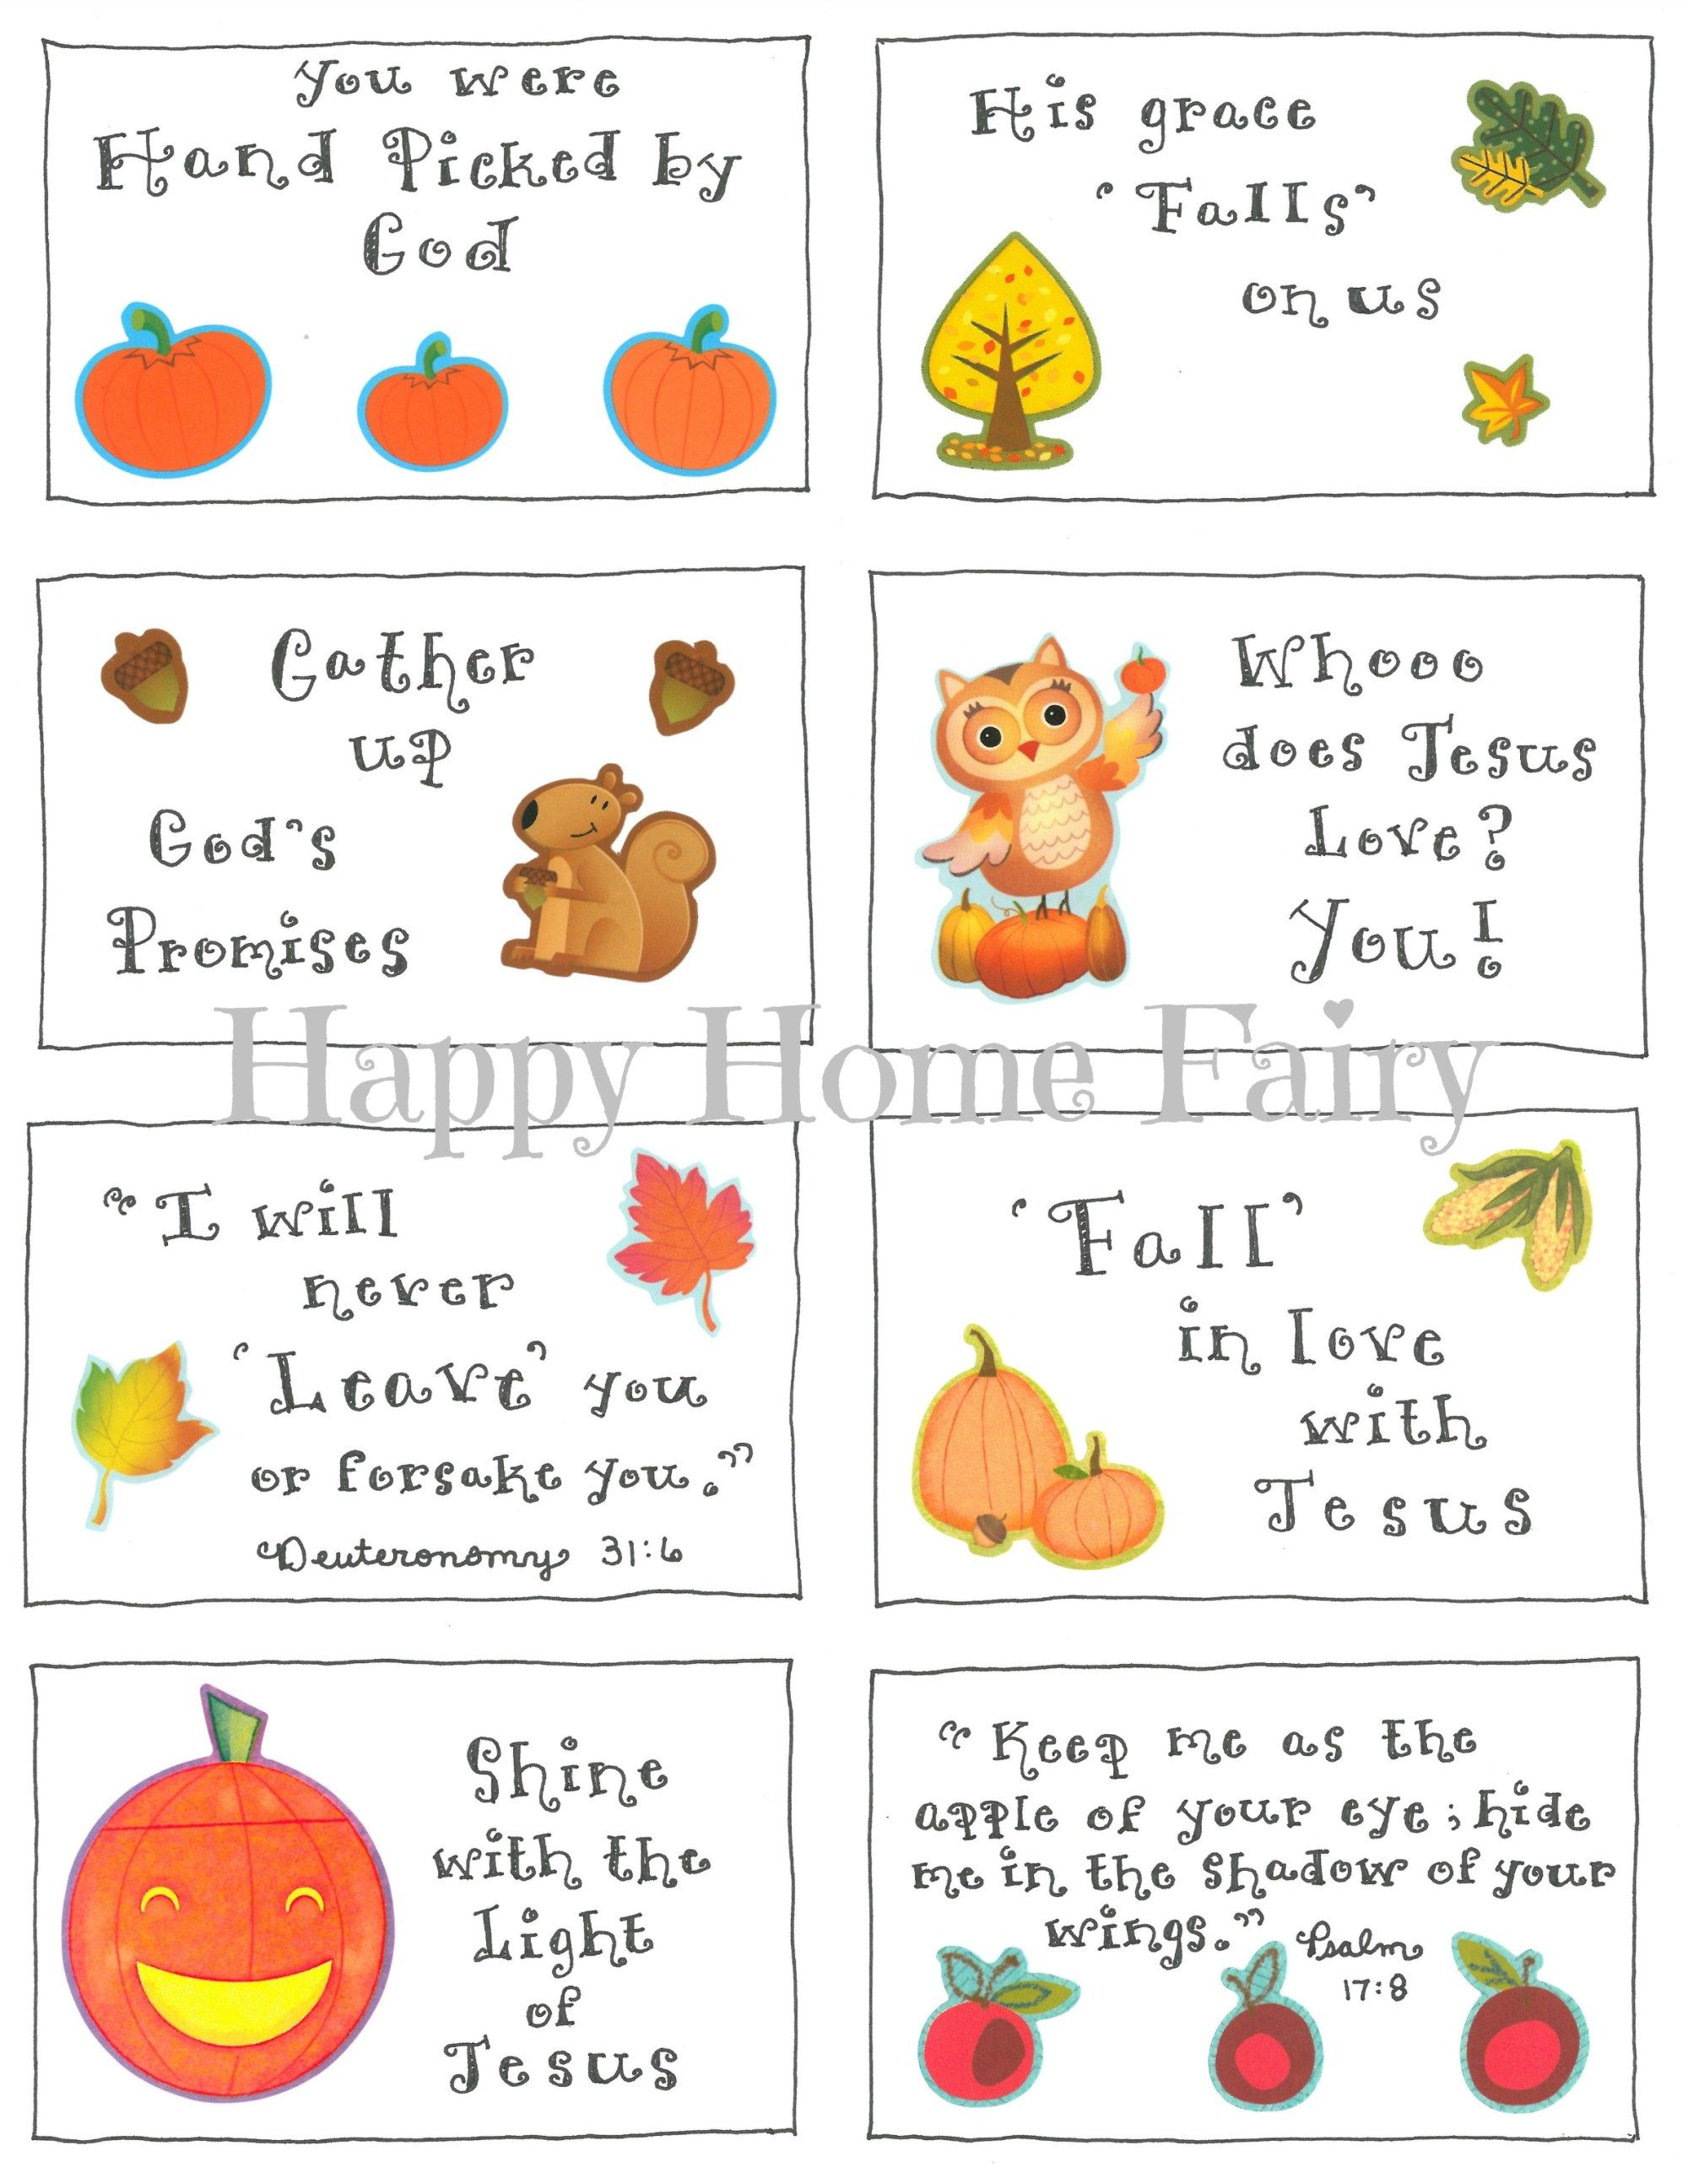 Inspirational Fall Lunchbox Notes - FREE Printable | Free printable ...